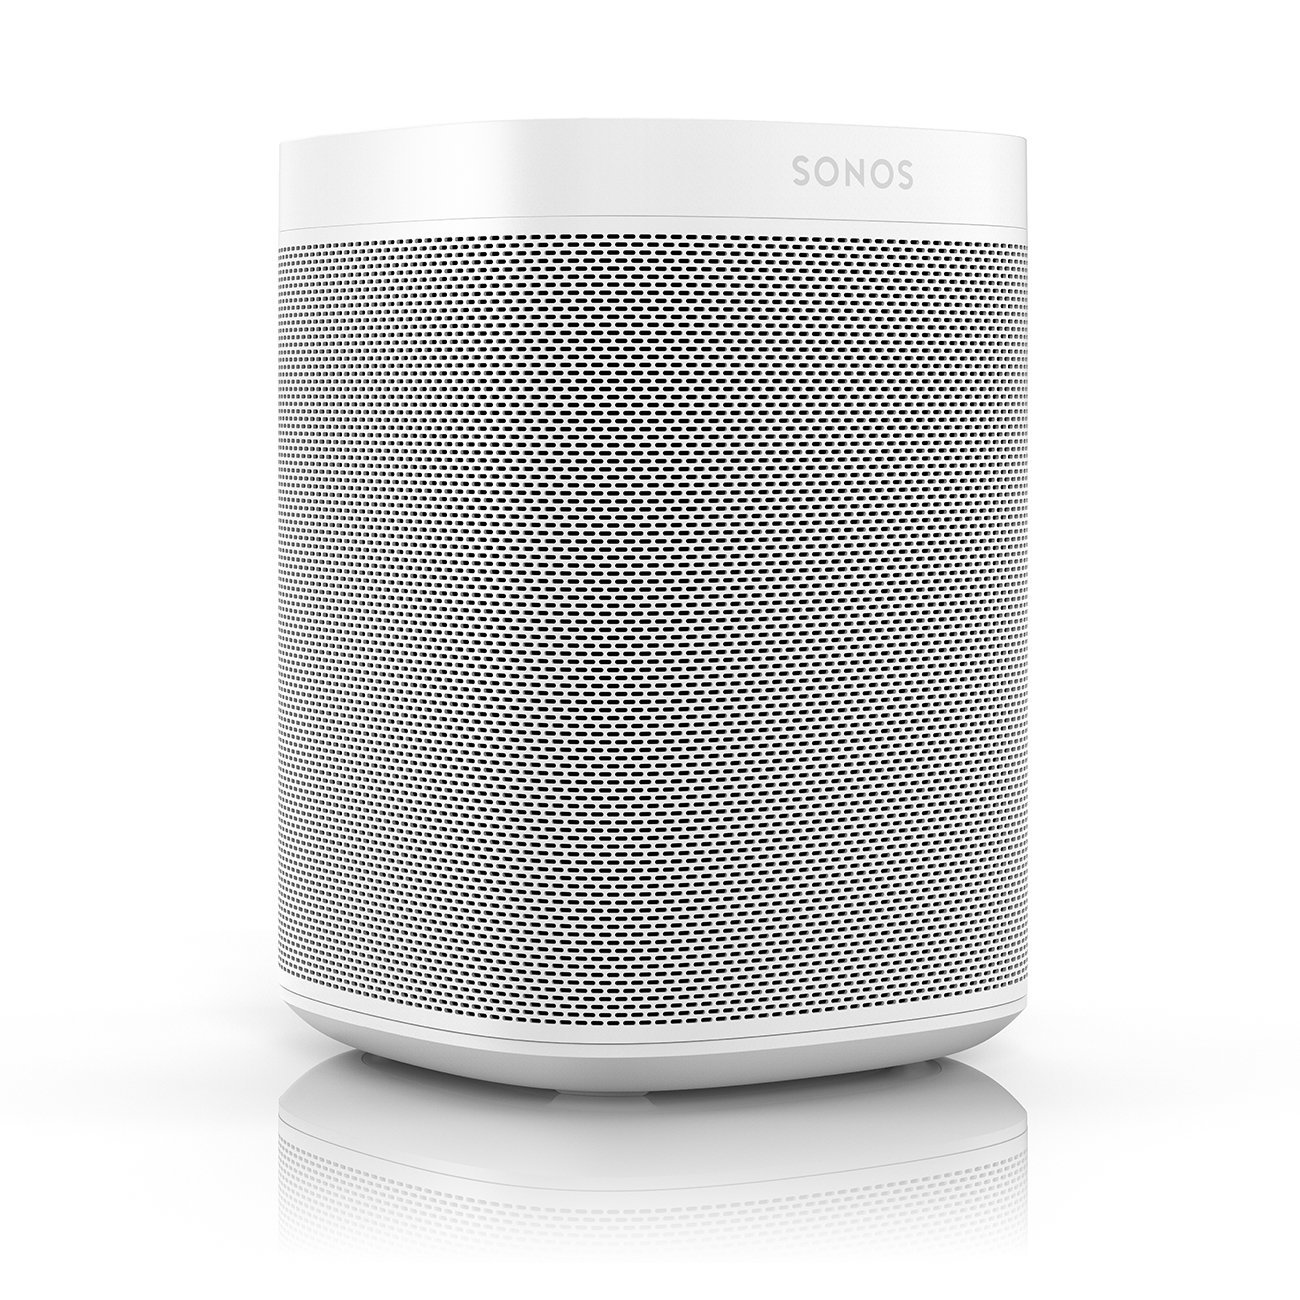 Sonos One Voice Controlled Smart Speaker with Amazon Alexa Built-in photo